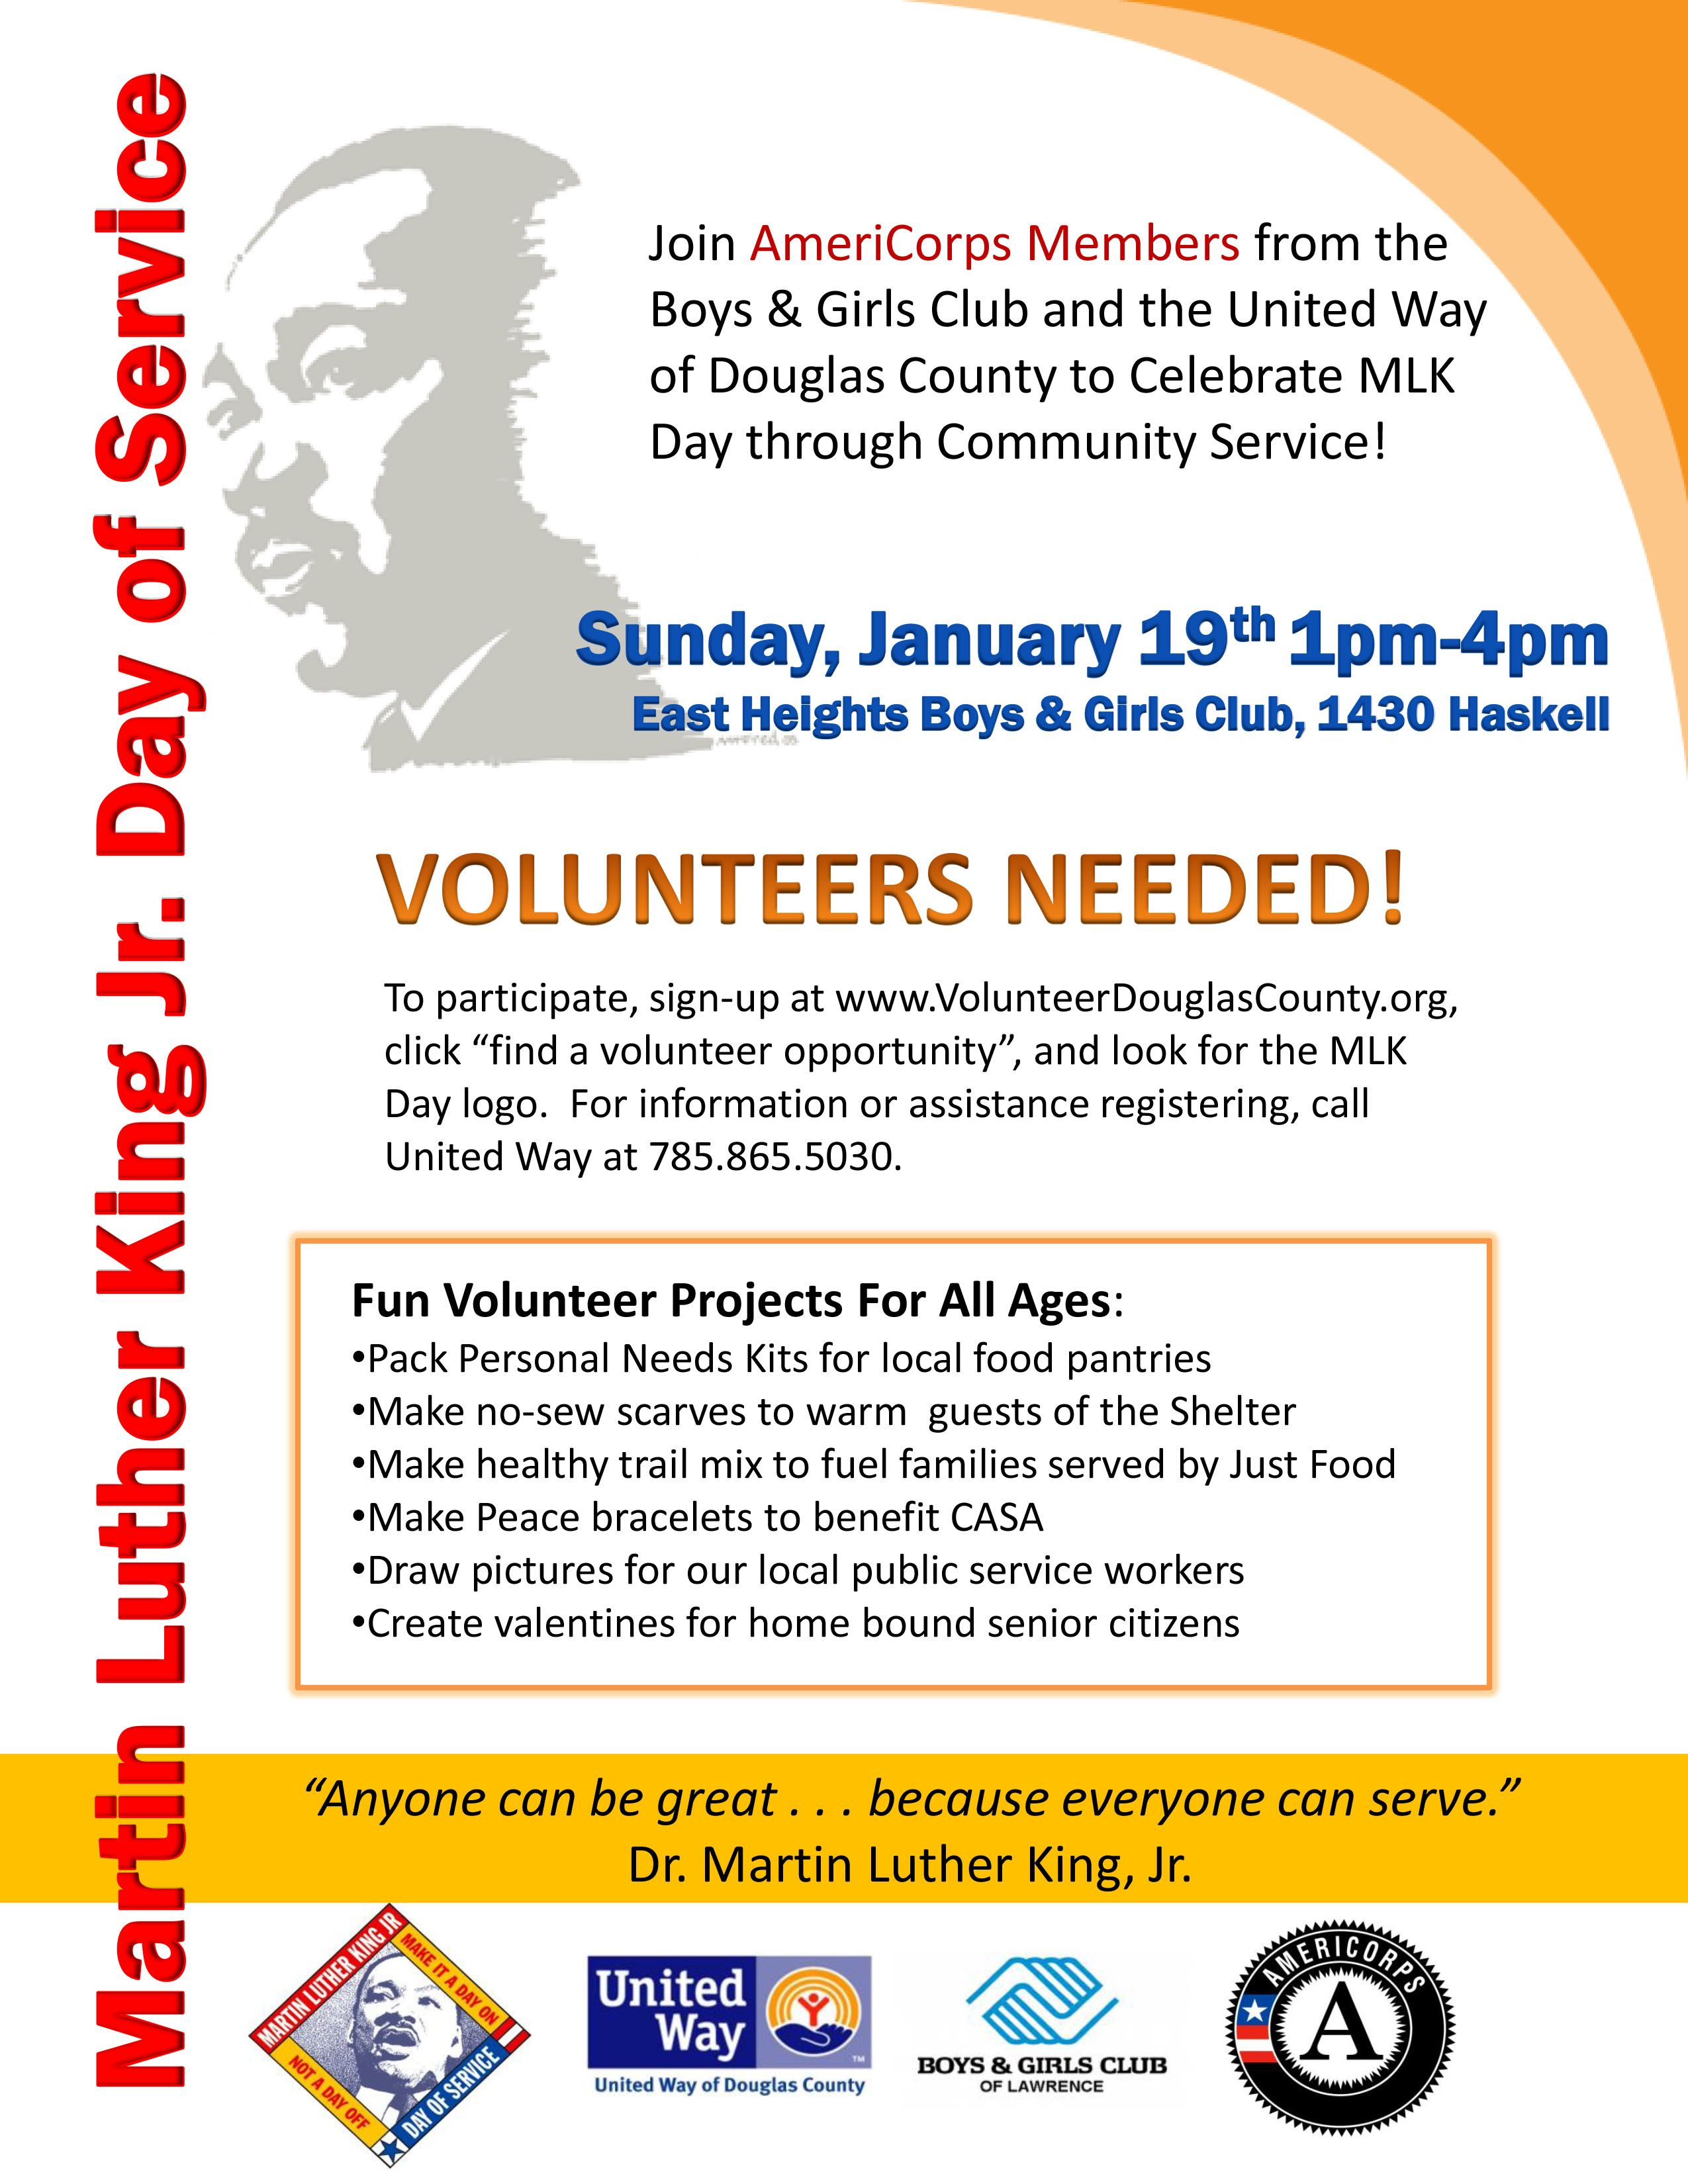 UPDATED MLK Day of Service flyer with volunteer